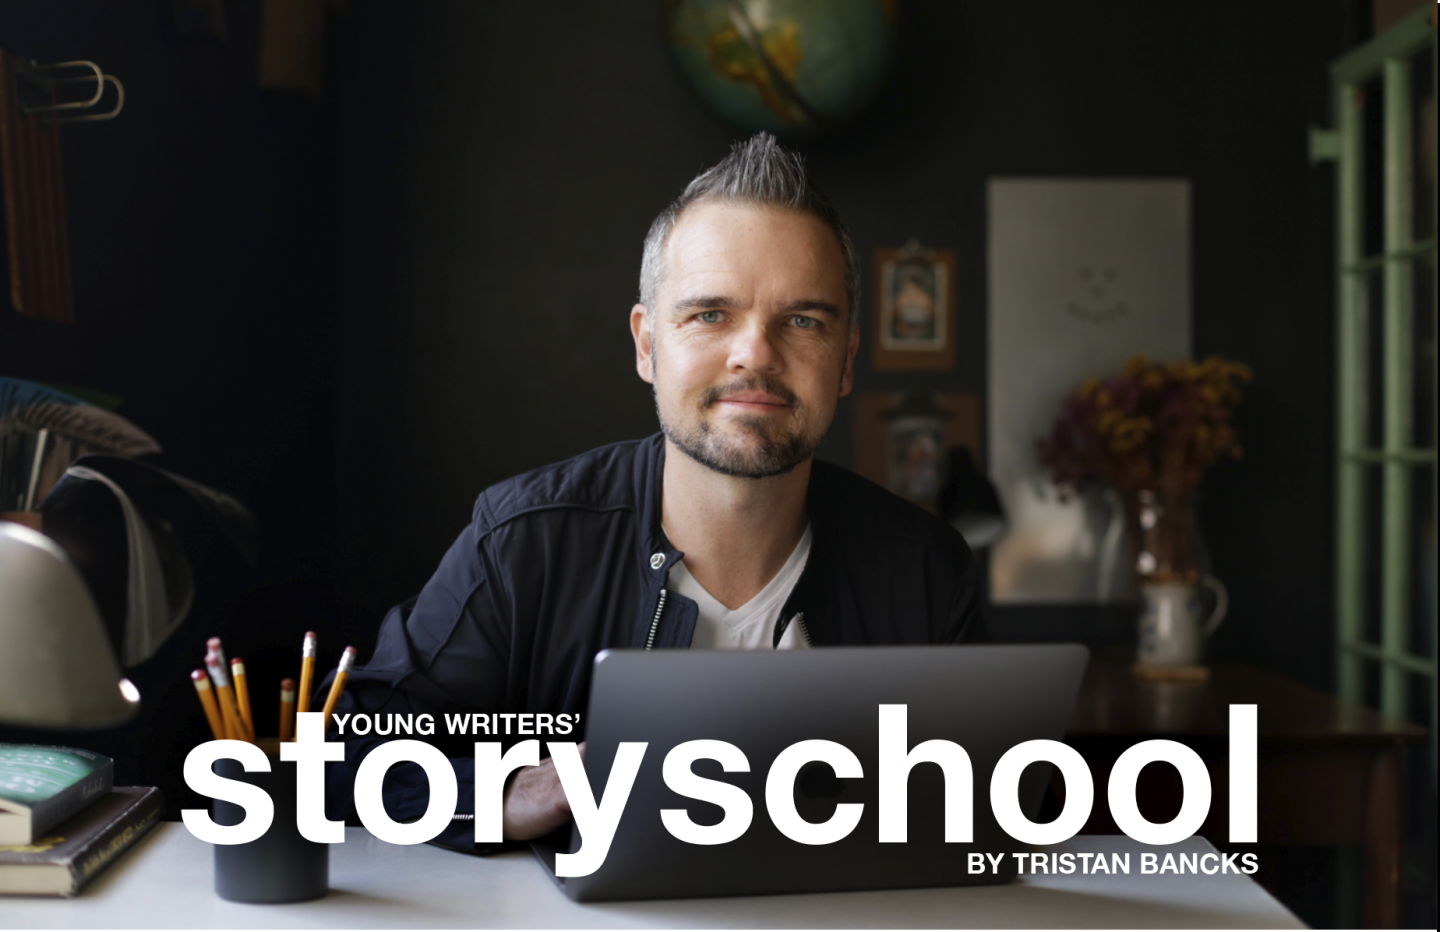 Young Writers' Story School by Tristan Bancks